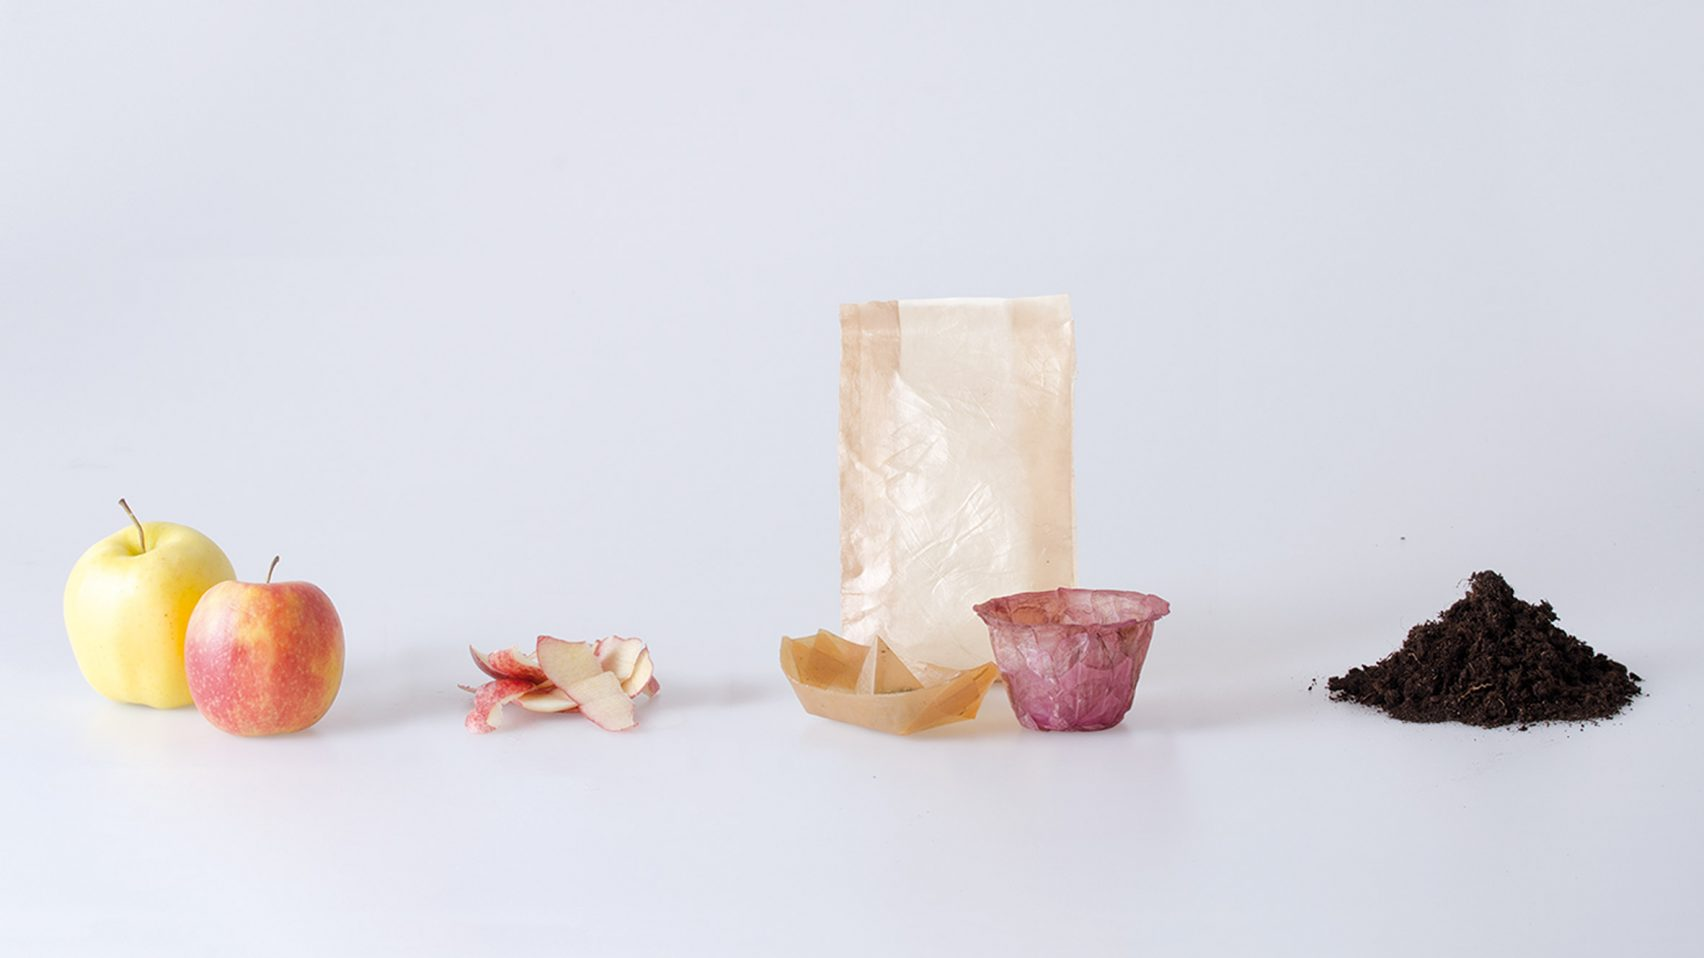 from-peel-to-peel-packaging-design_dezeen_2364_hero-1-1704x958.jpg